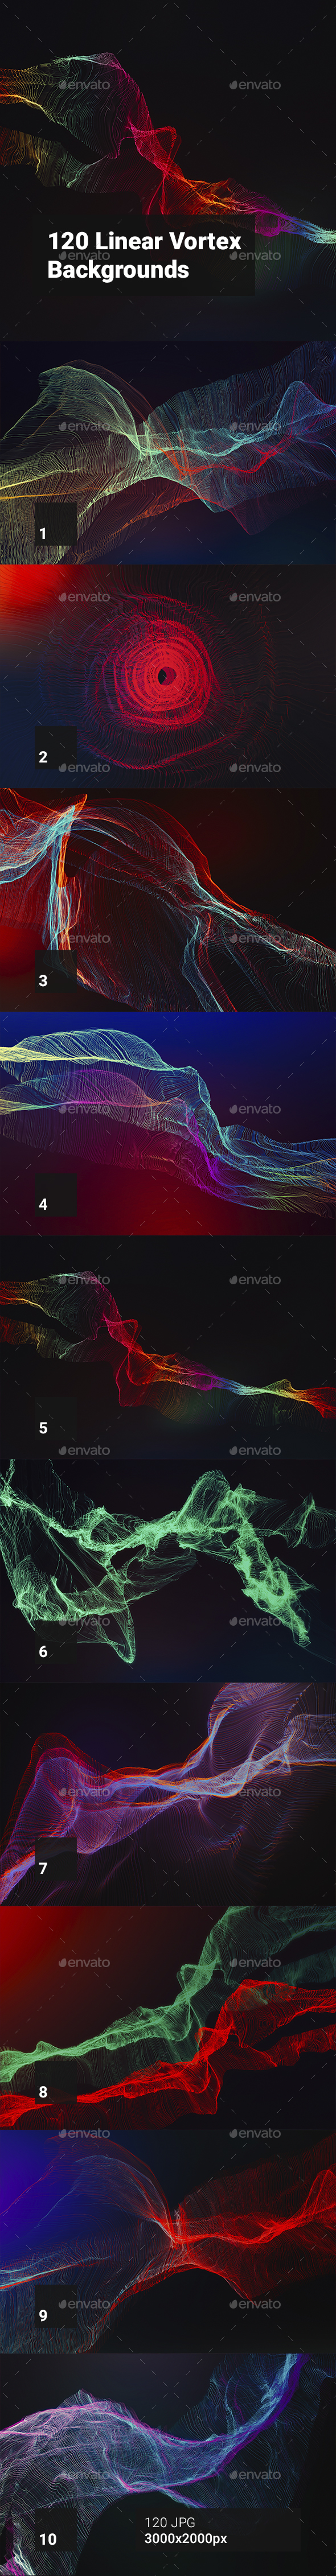 GraphicRiver 120 Linear Vortex Backgrounds 20443805